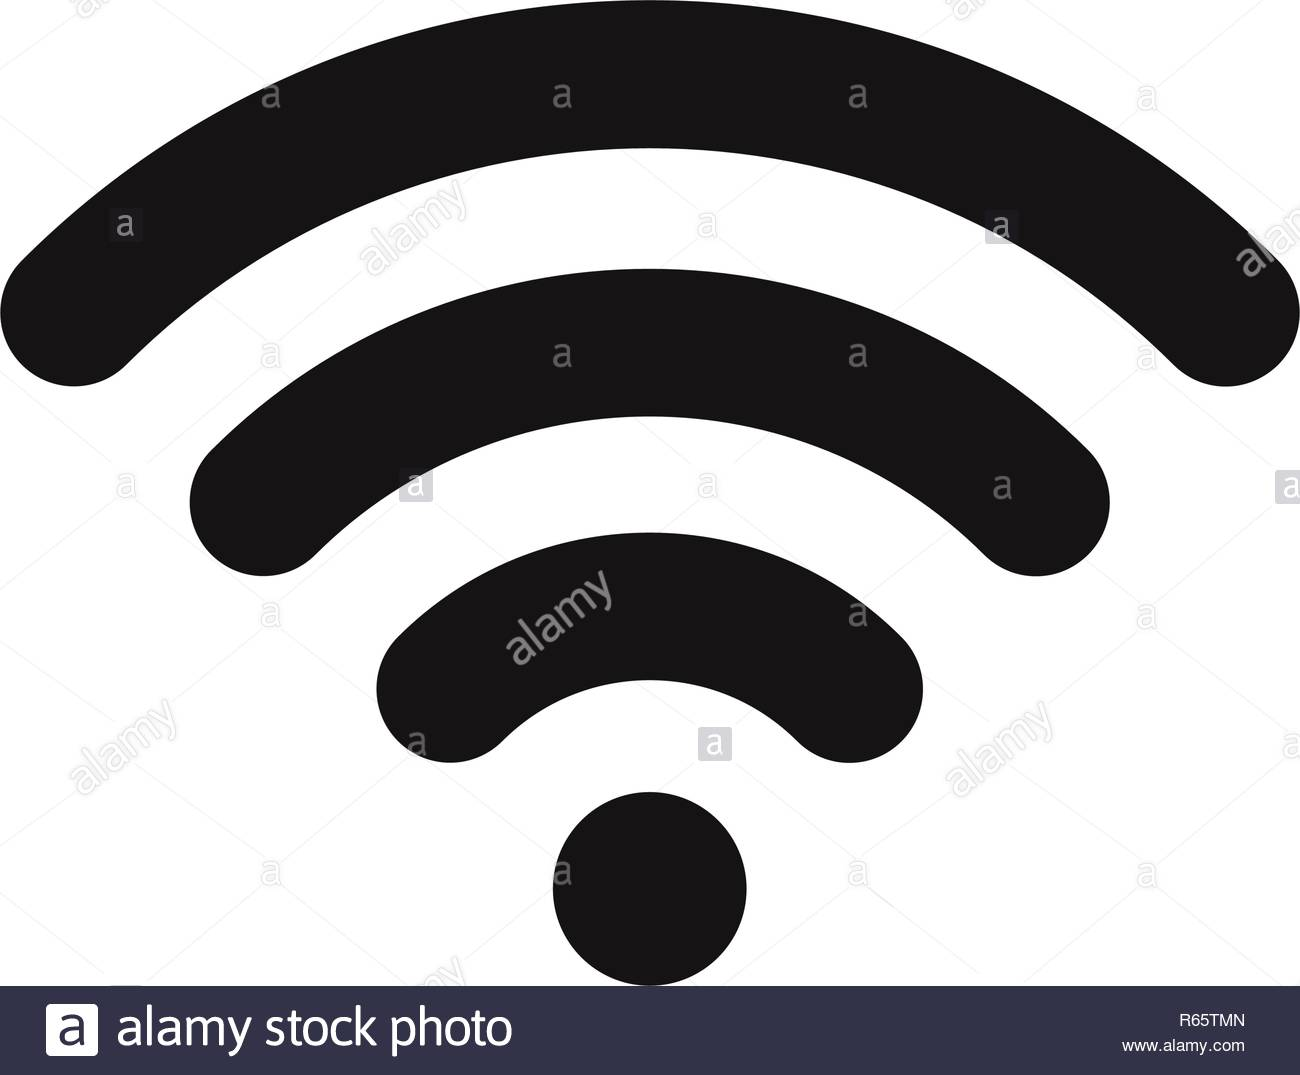 wifi signal icon, wireless symbol connection, internet, network Wireless Network Connection Symbol wifi signal icon, wireless symbol connection, internet, network flat vector sign isolated on white background simple vector illustration for graphic